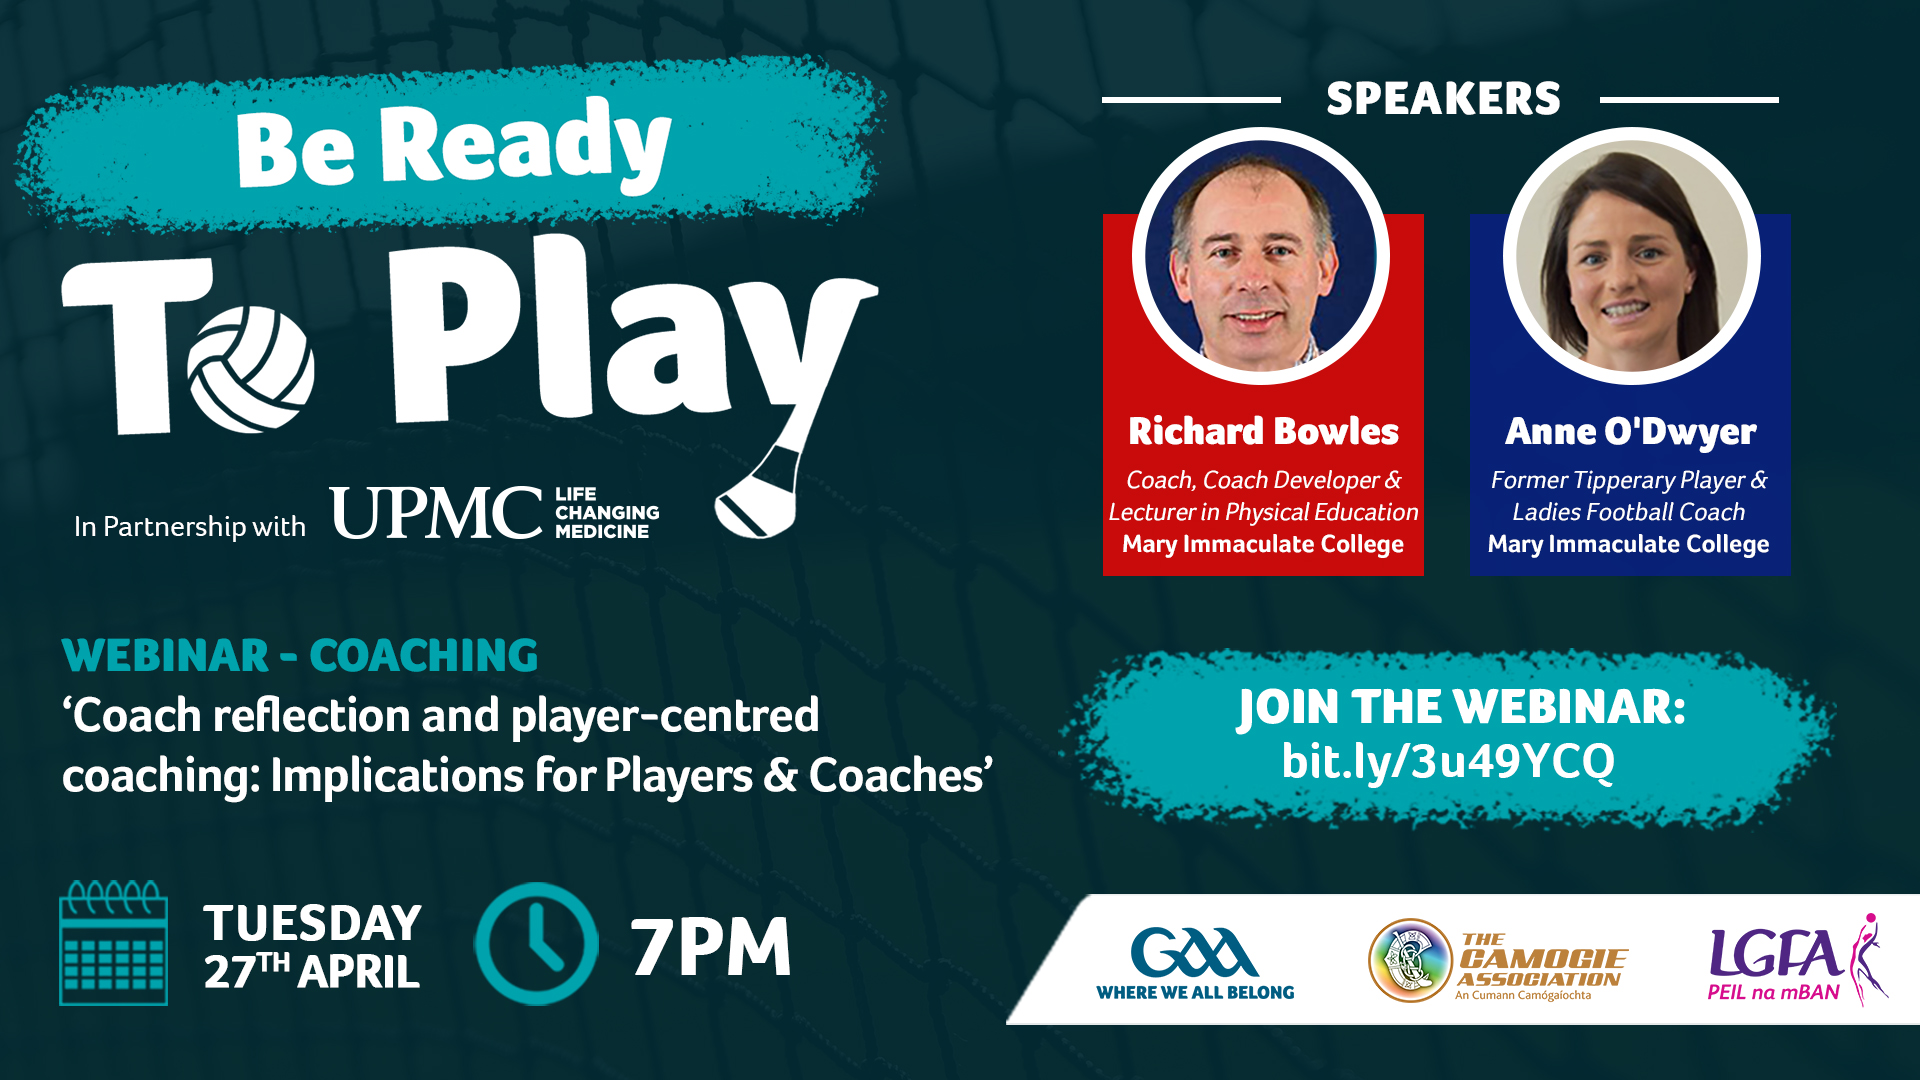 'Be Ready to Play'Coaching webinar – Tuesday April 27th